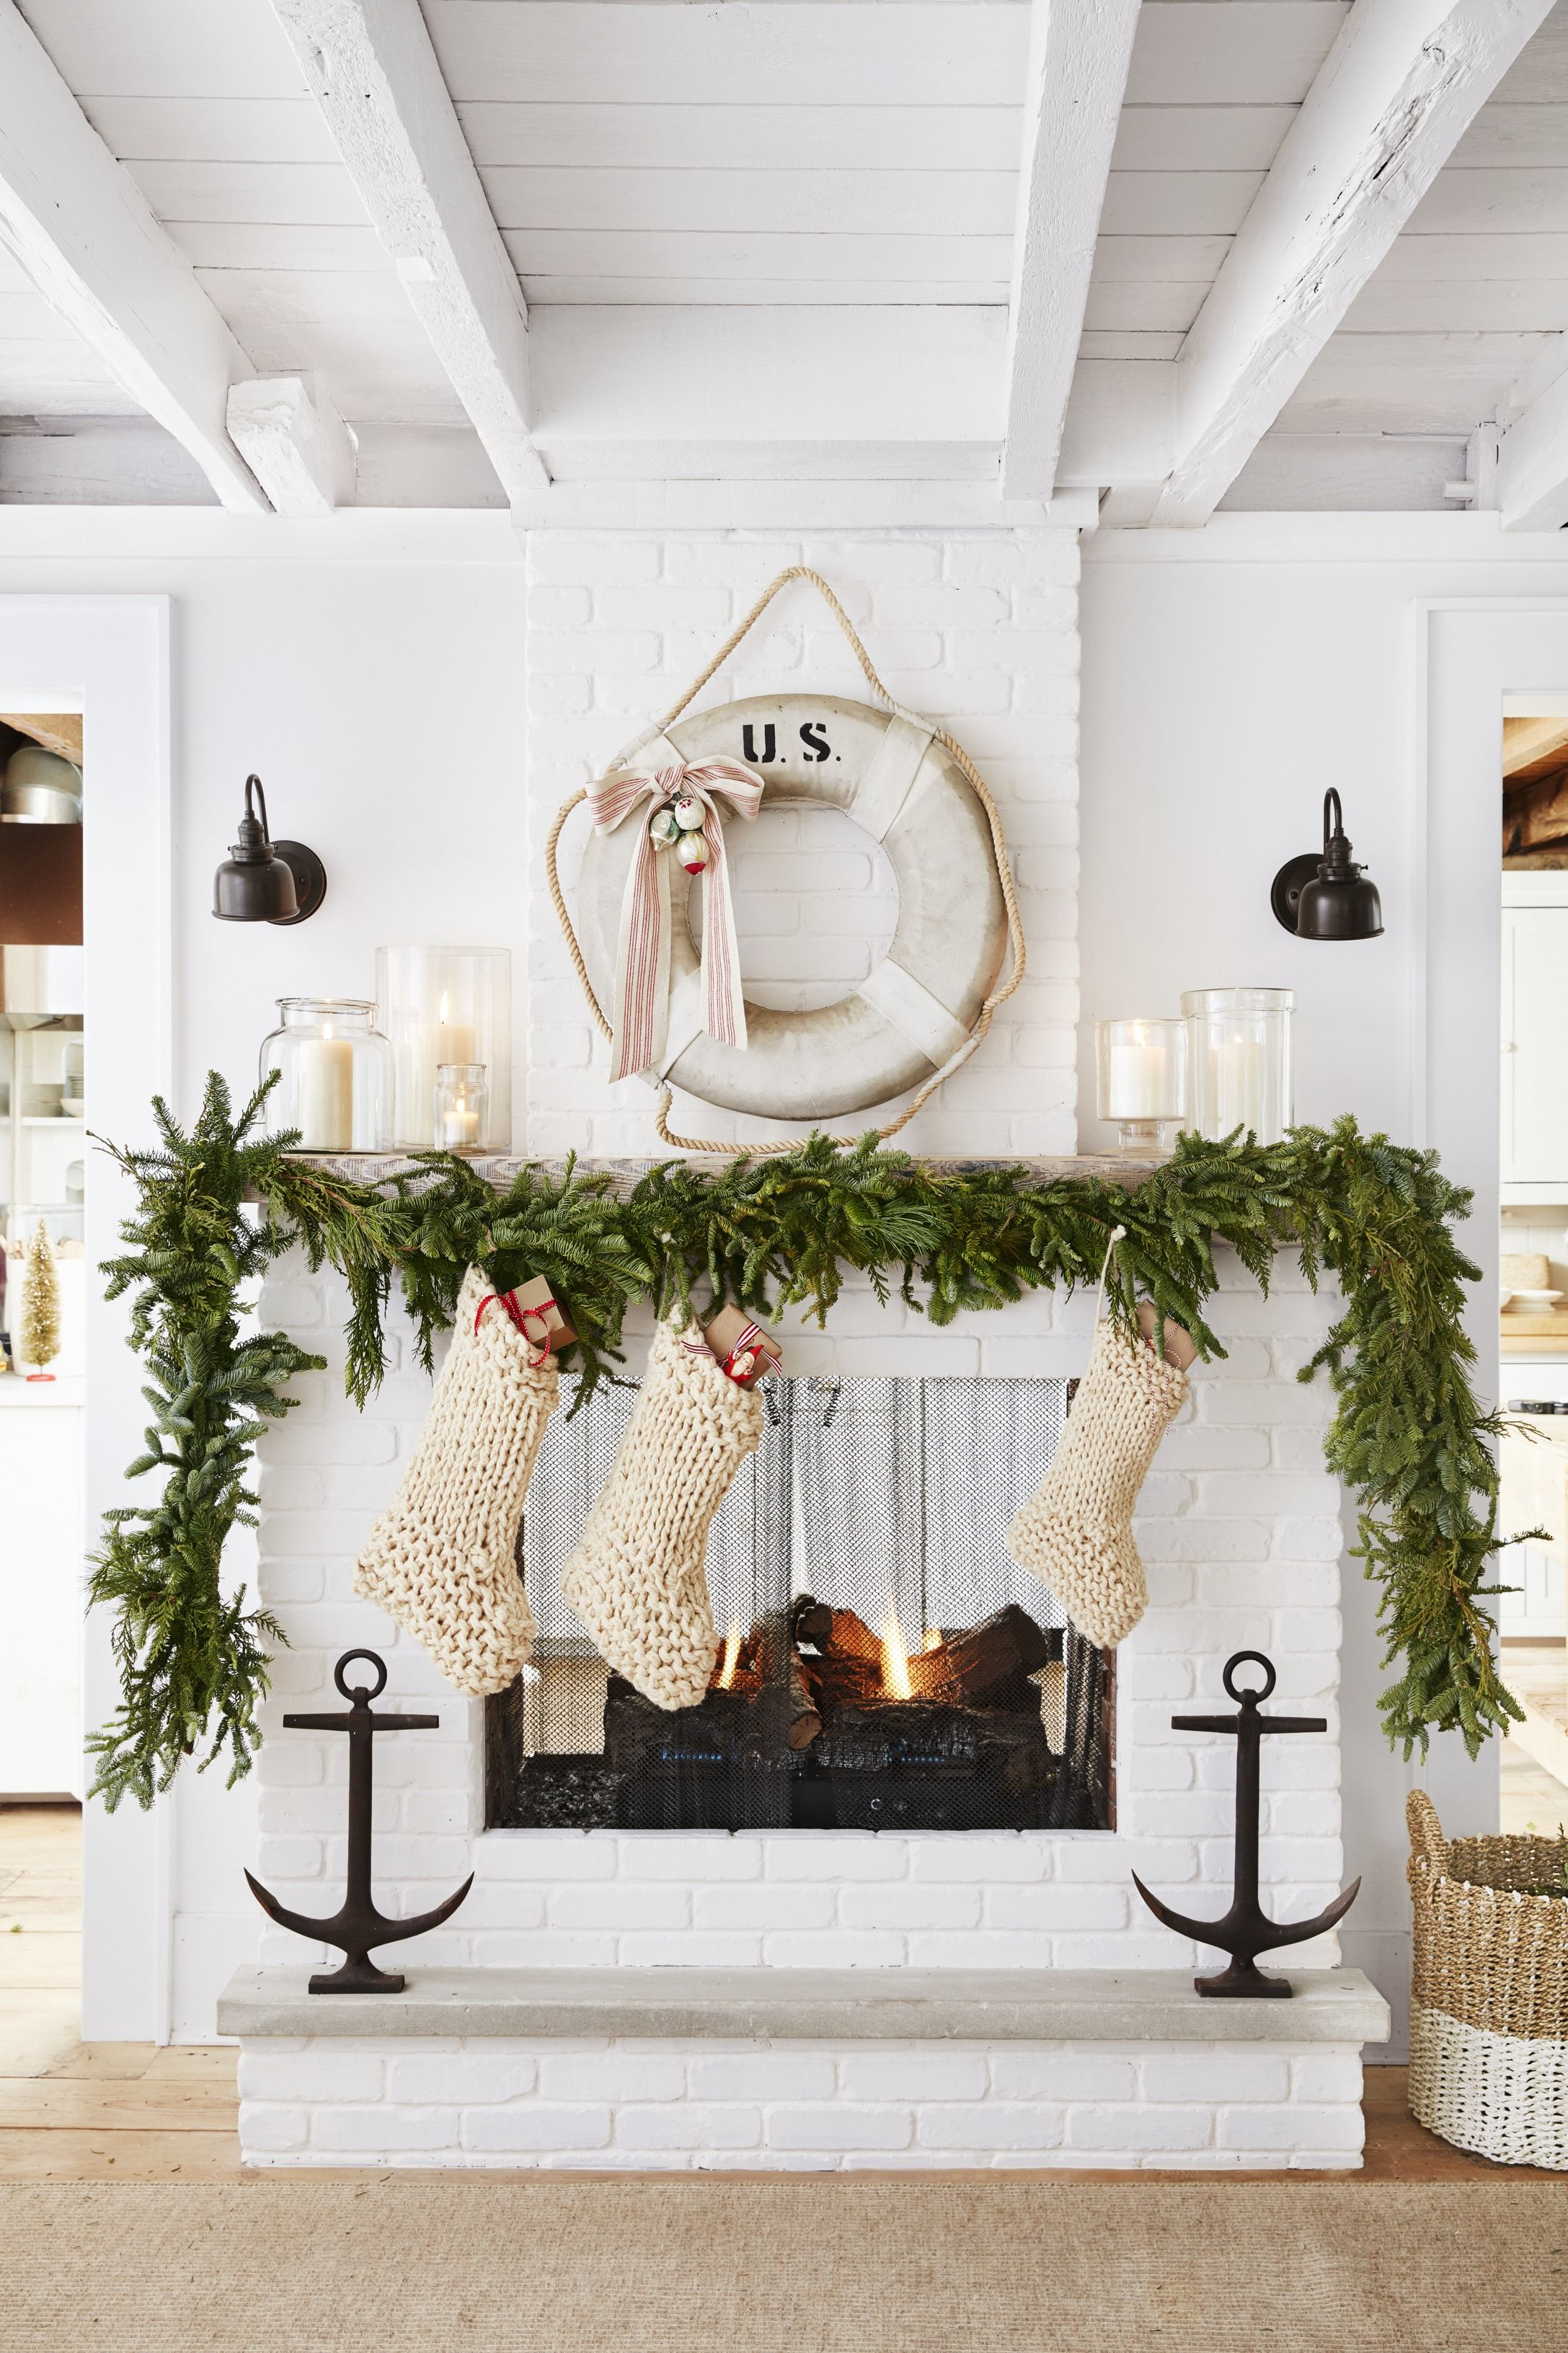 48 Best Christmas Garland Ideas 2020 Decorating With Holiday Garlands